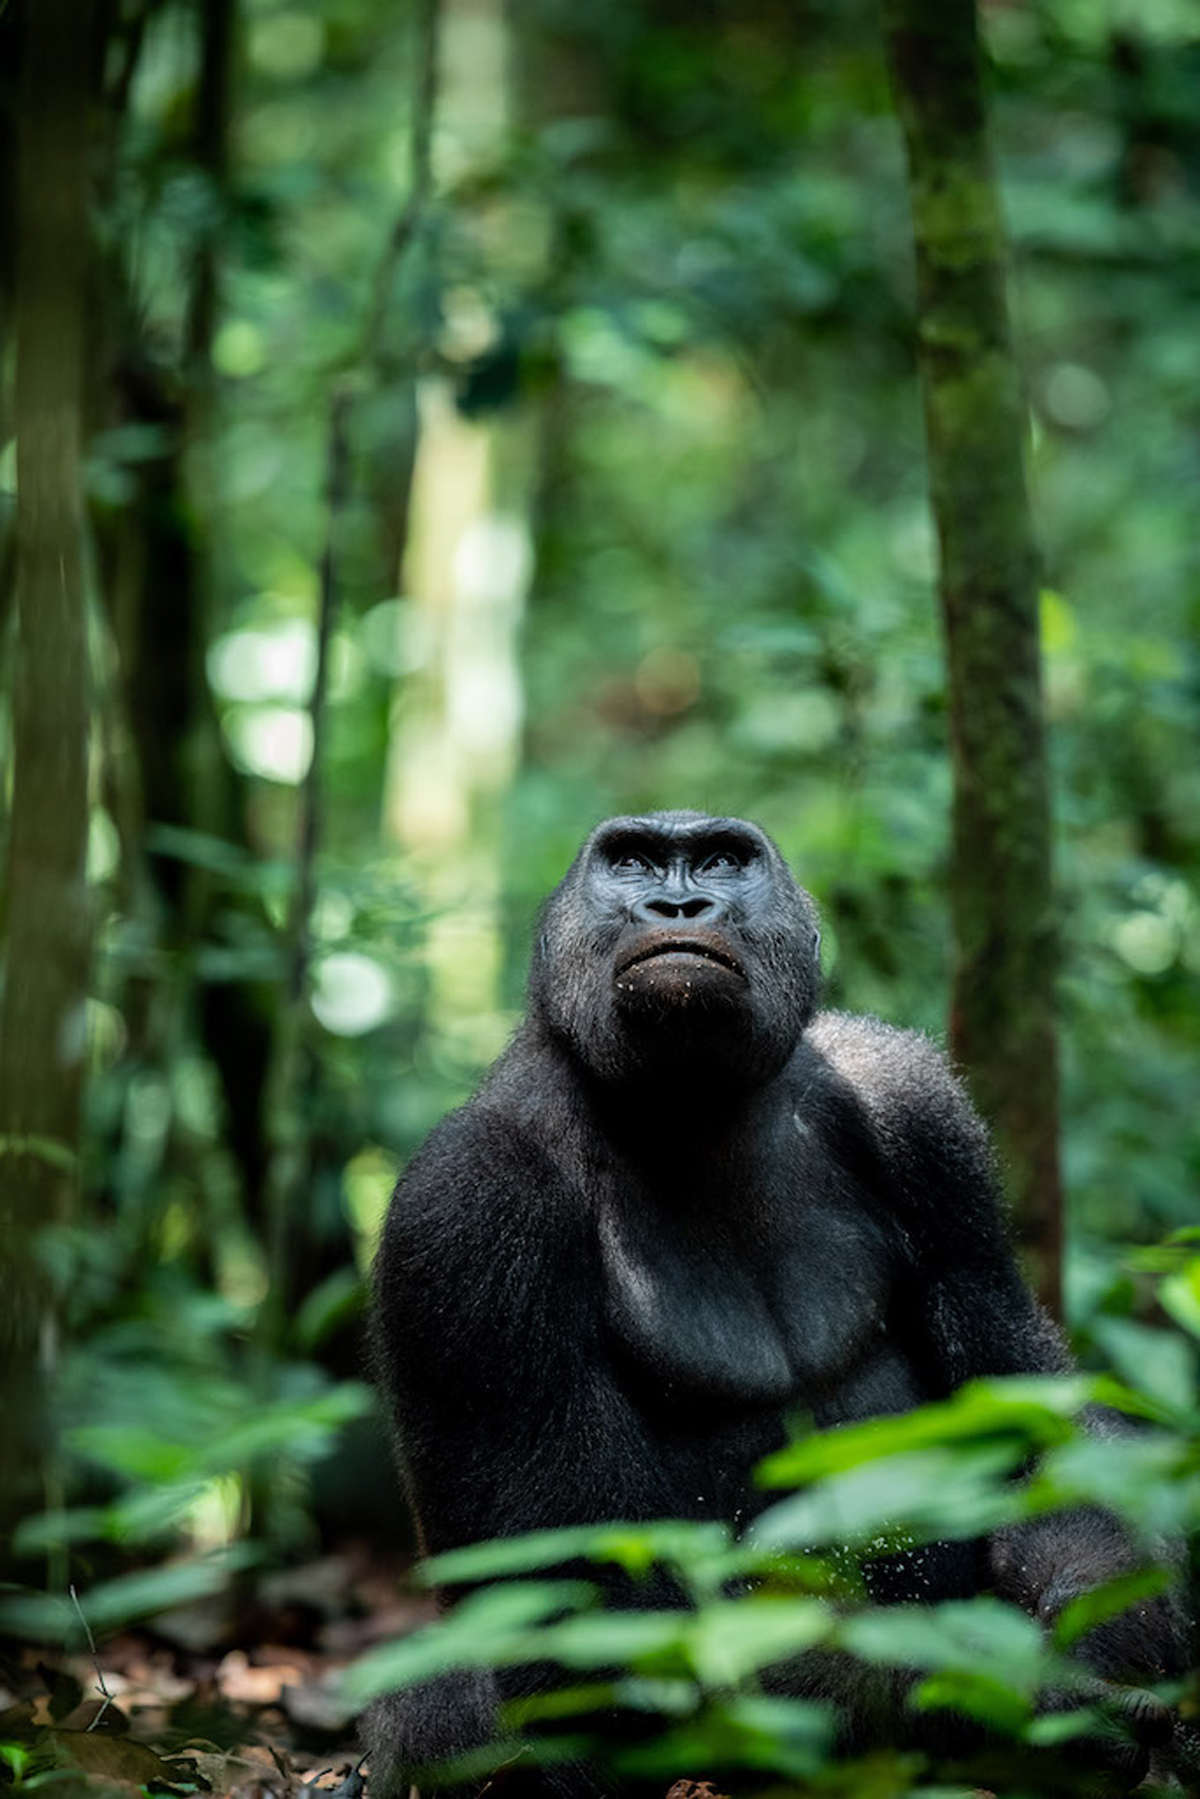 A lowland gorilla looking thoughtful in Dzanga-Sangha National Park, Central African Republic © Jacha Potgieter